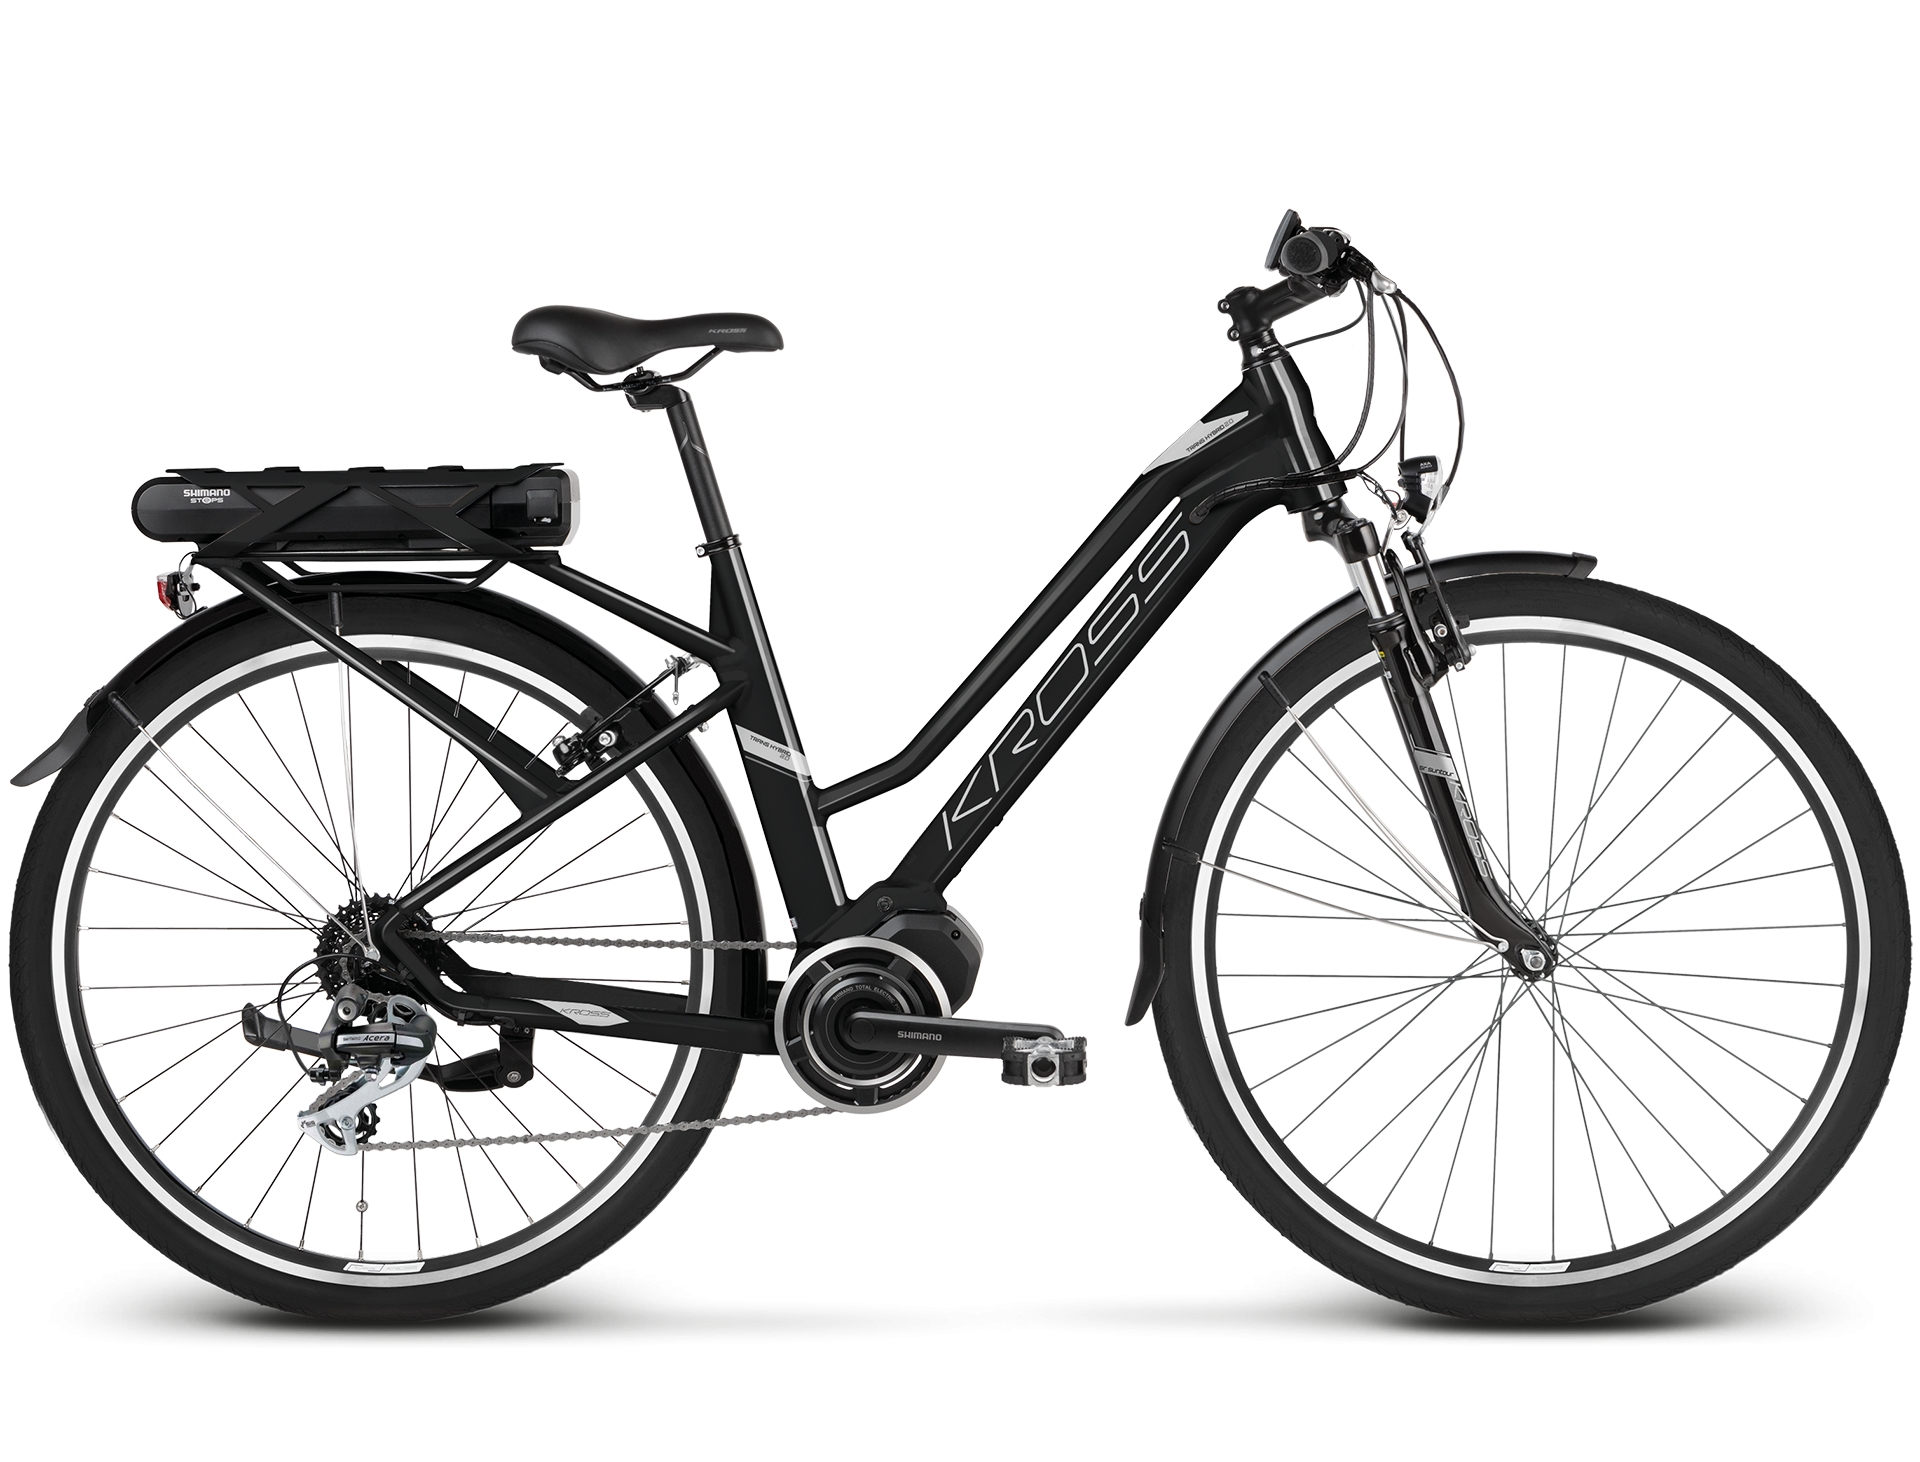 //kross.pl/sites/default/files/styles/bike_zoom/public/bikes/2018/ebike/trans_hybrid_2_0_black_silver_glossy.png